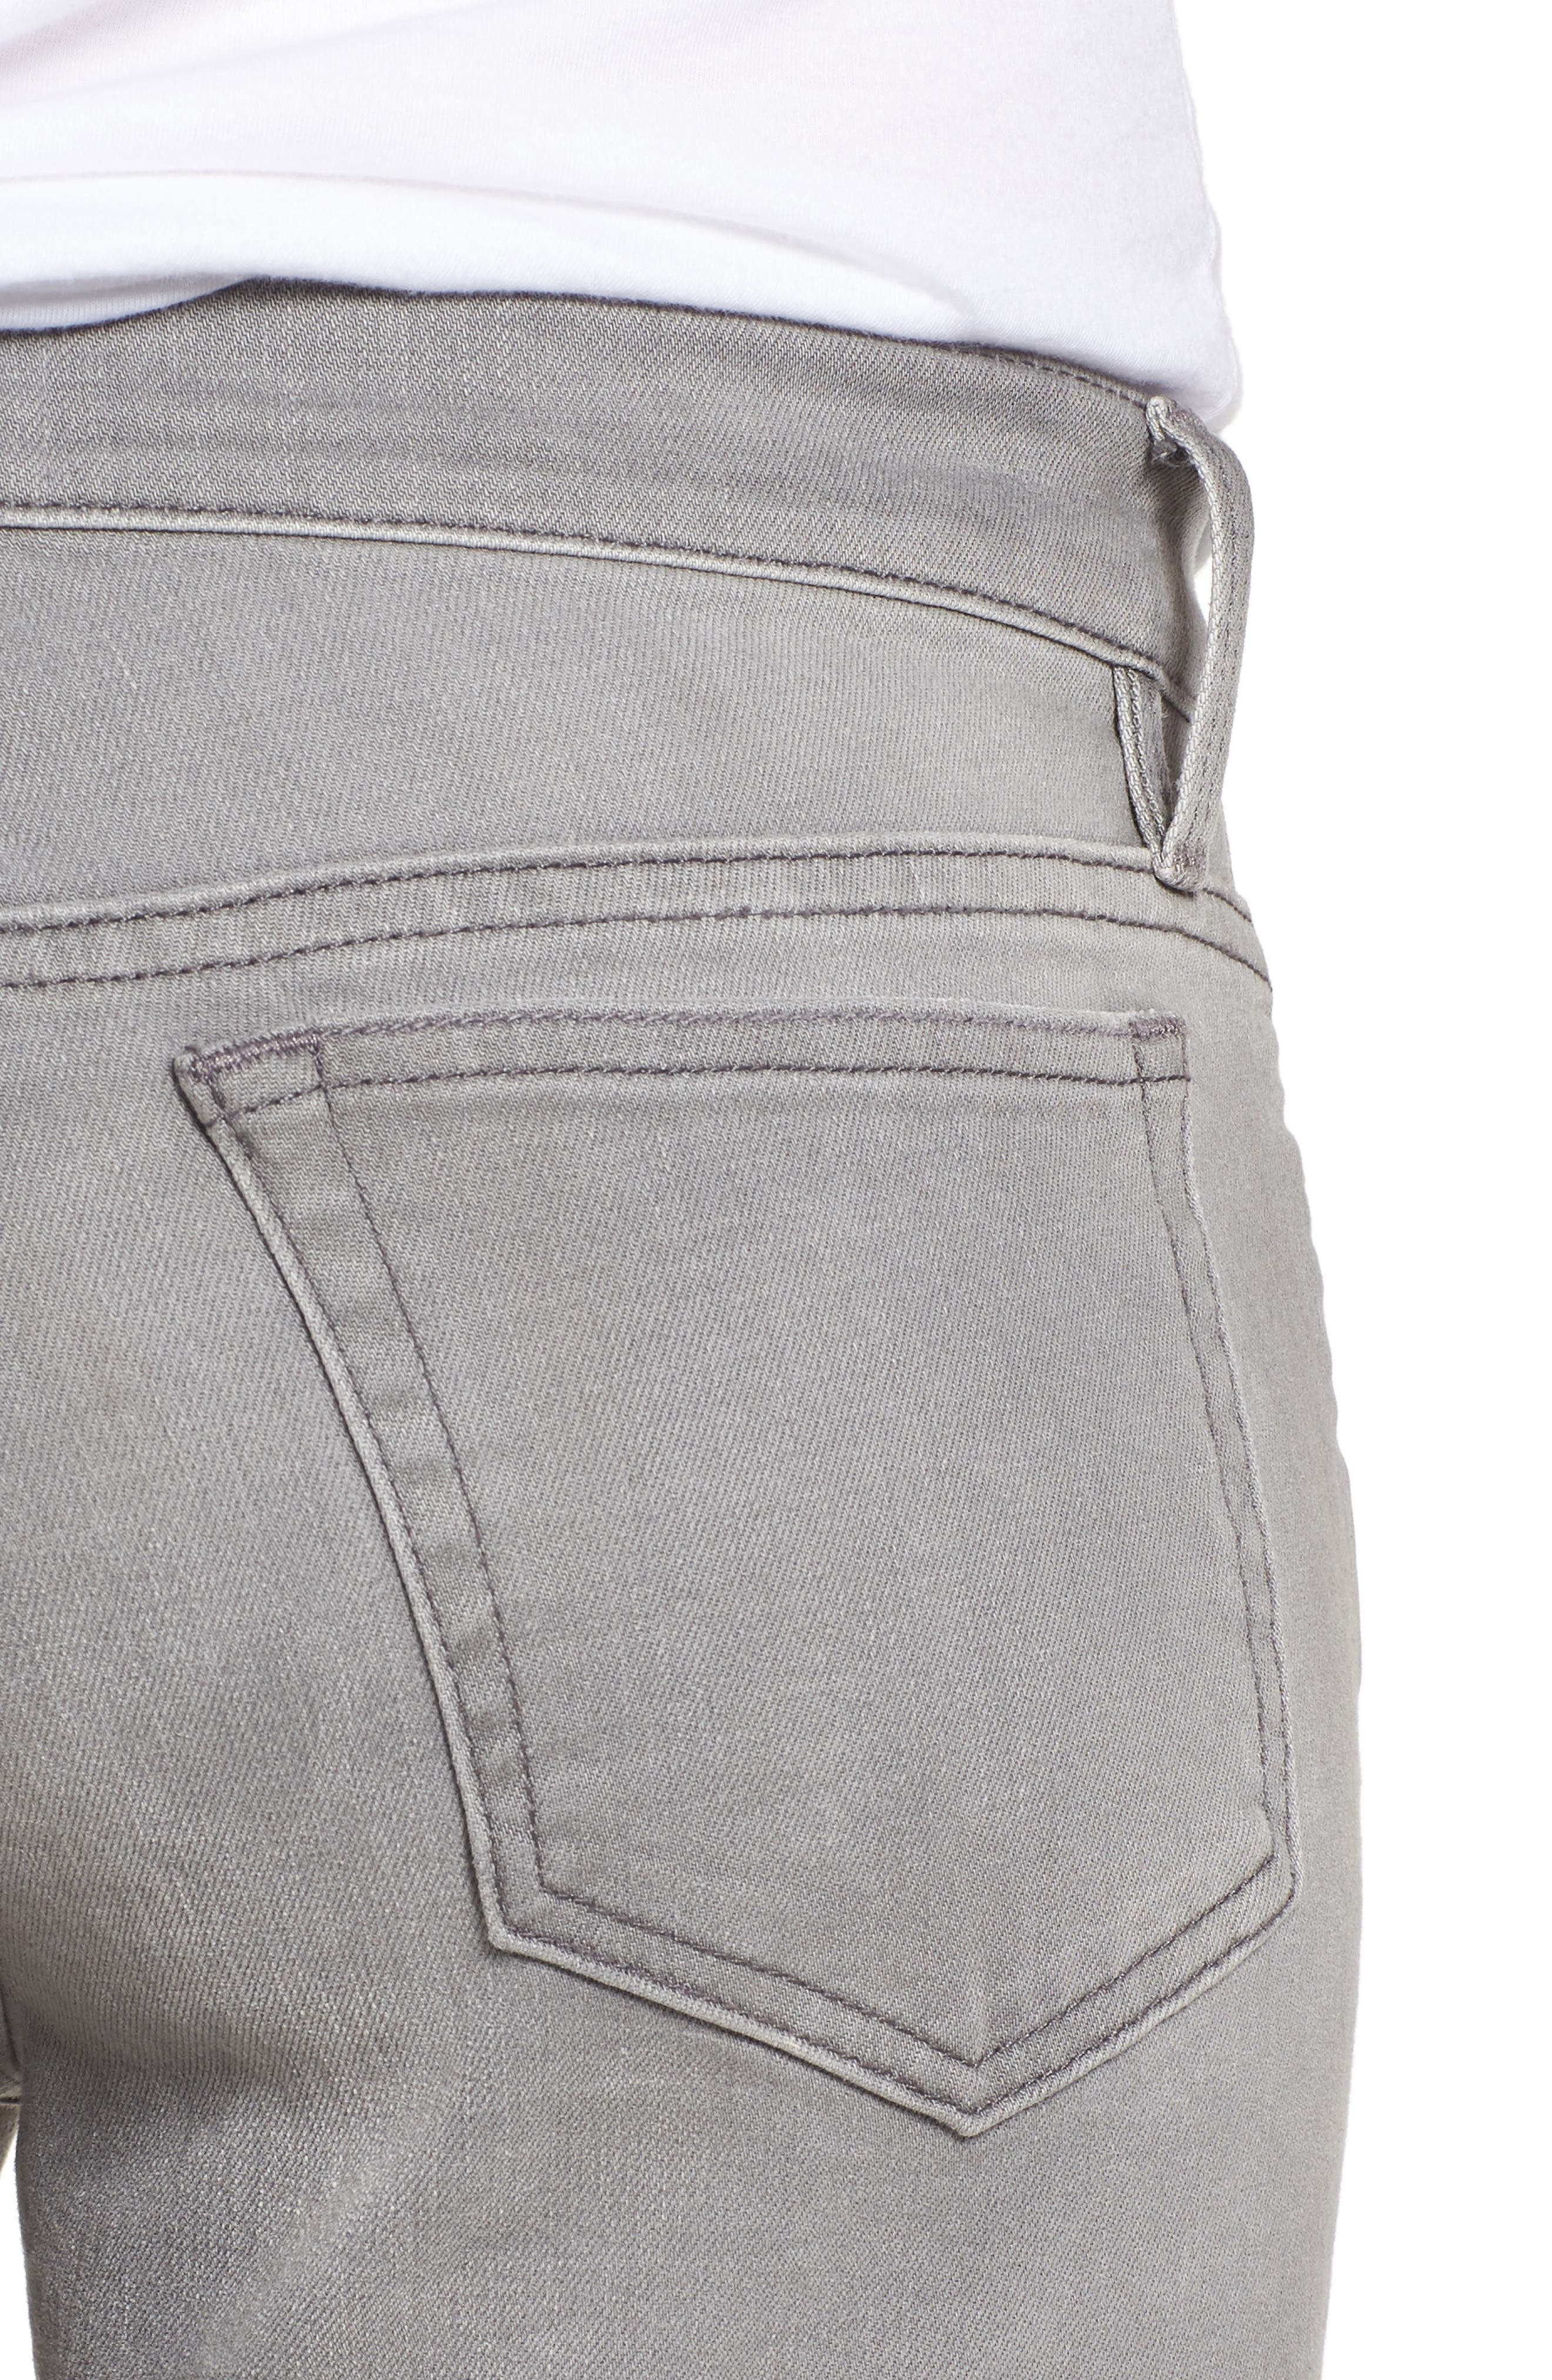 L'Homme Slim Fit Jeans,                             Alternate thumbnail 4, color,                             Bedwell